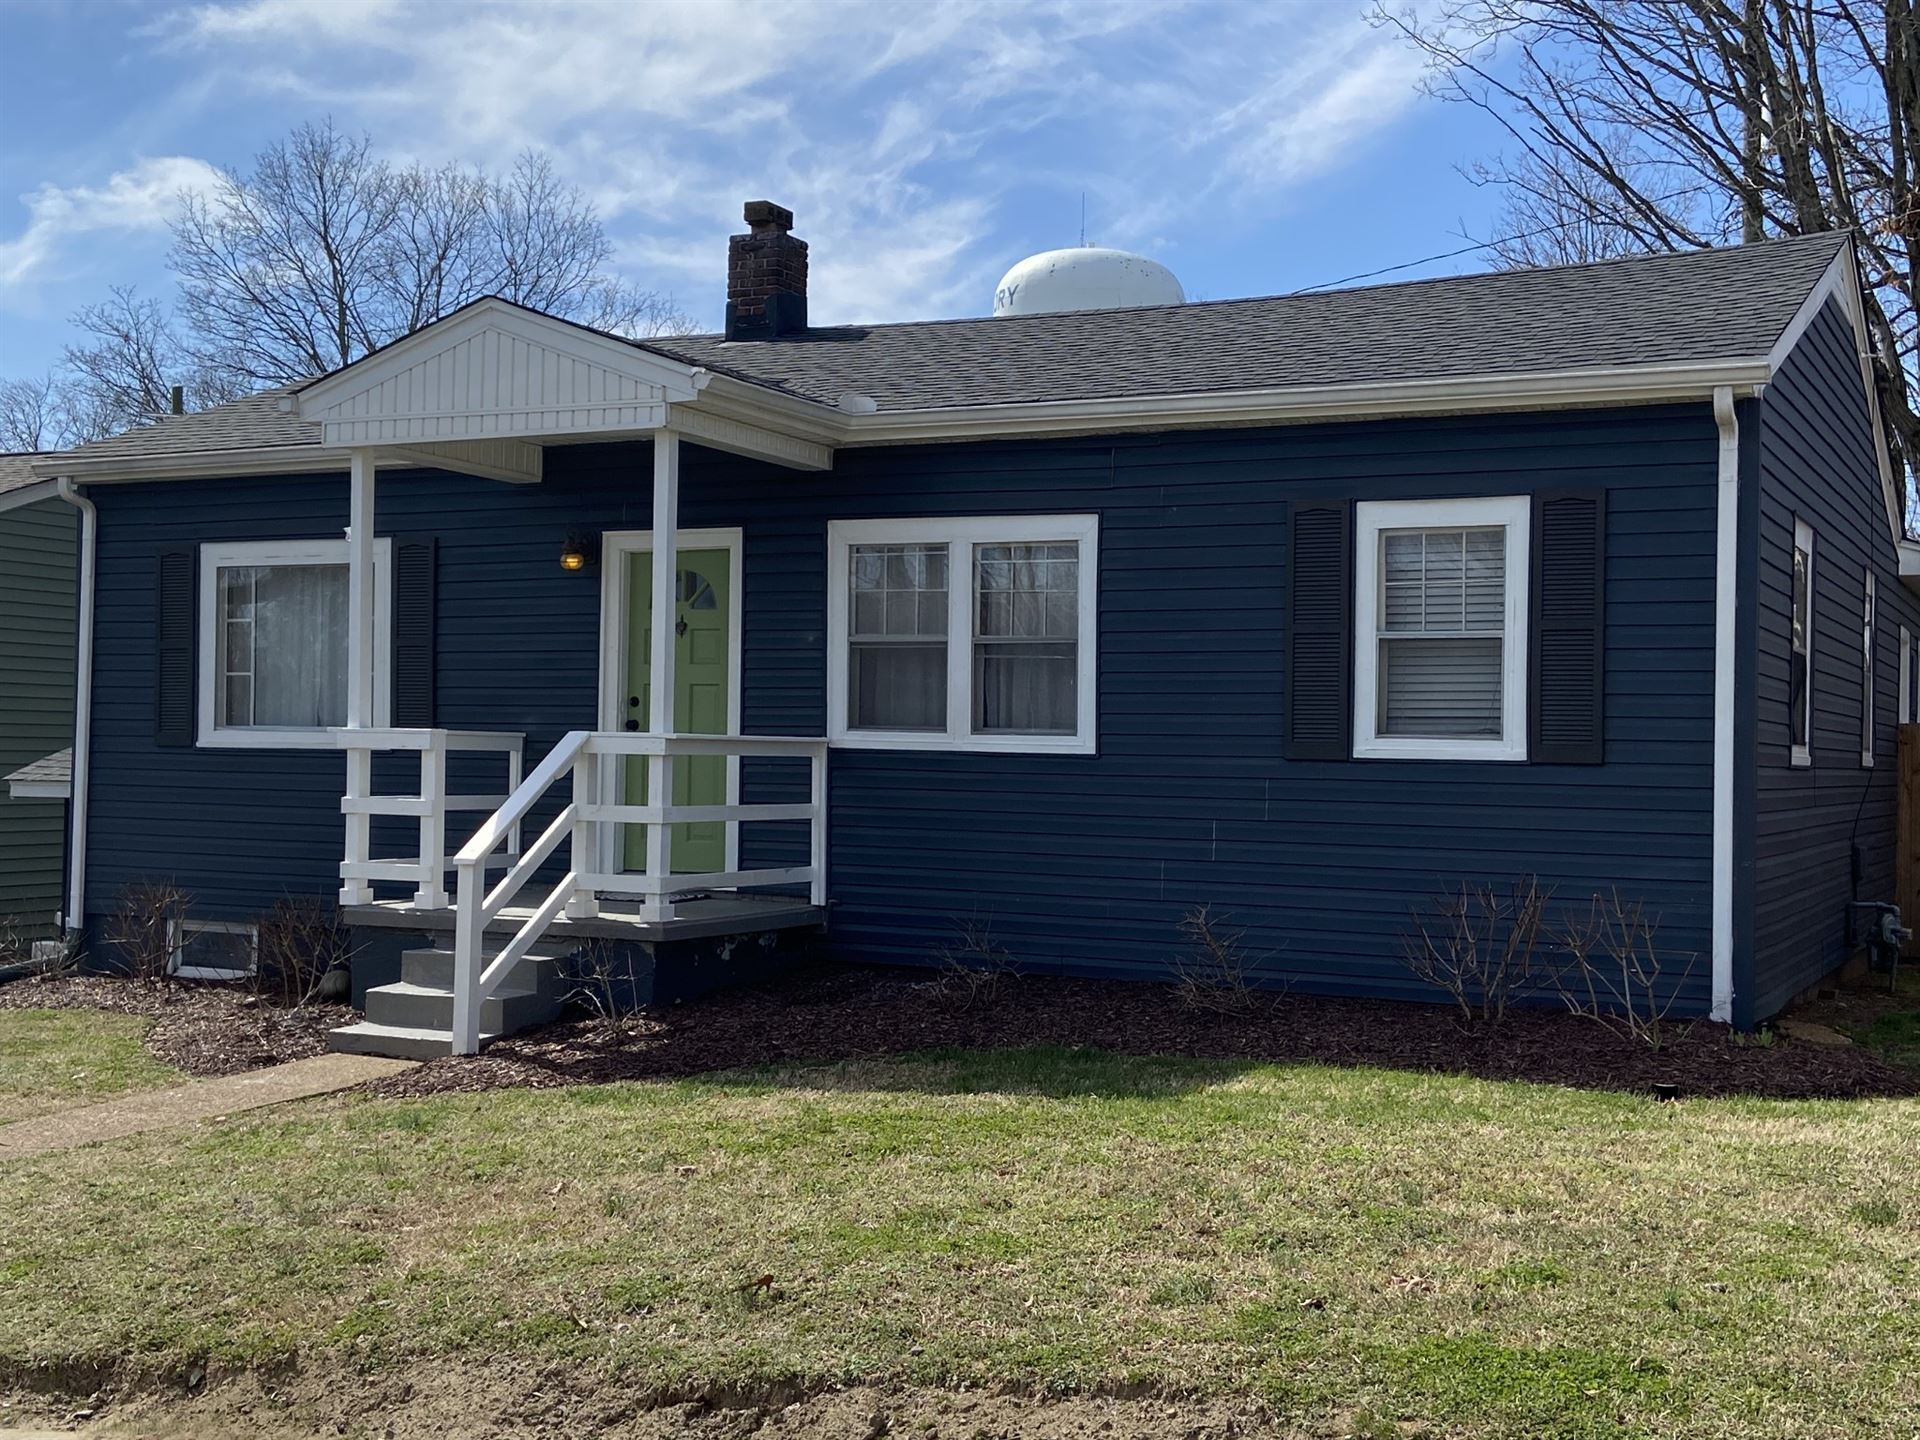 Photo of 506 Cleves St, Old Hickory, TN 37138 (MLS # 2233805)